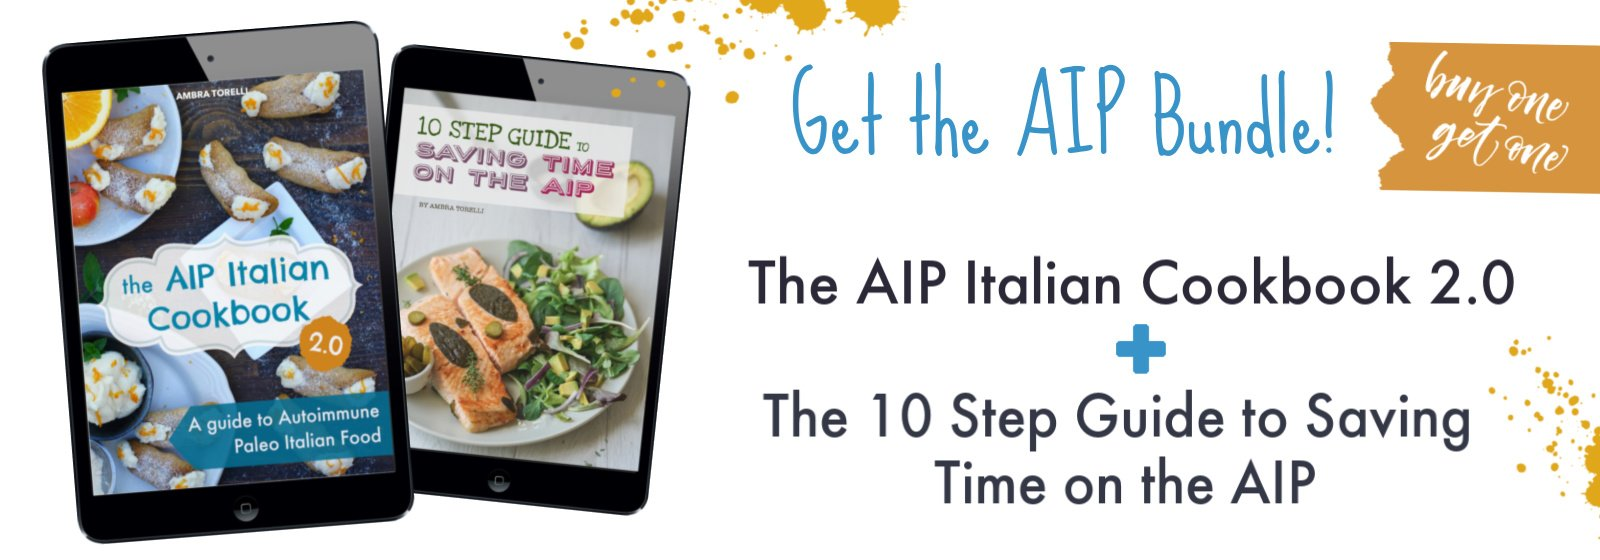 AIP Italian Food - The AIP Italian Cookbook